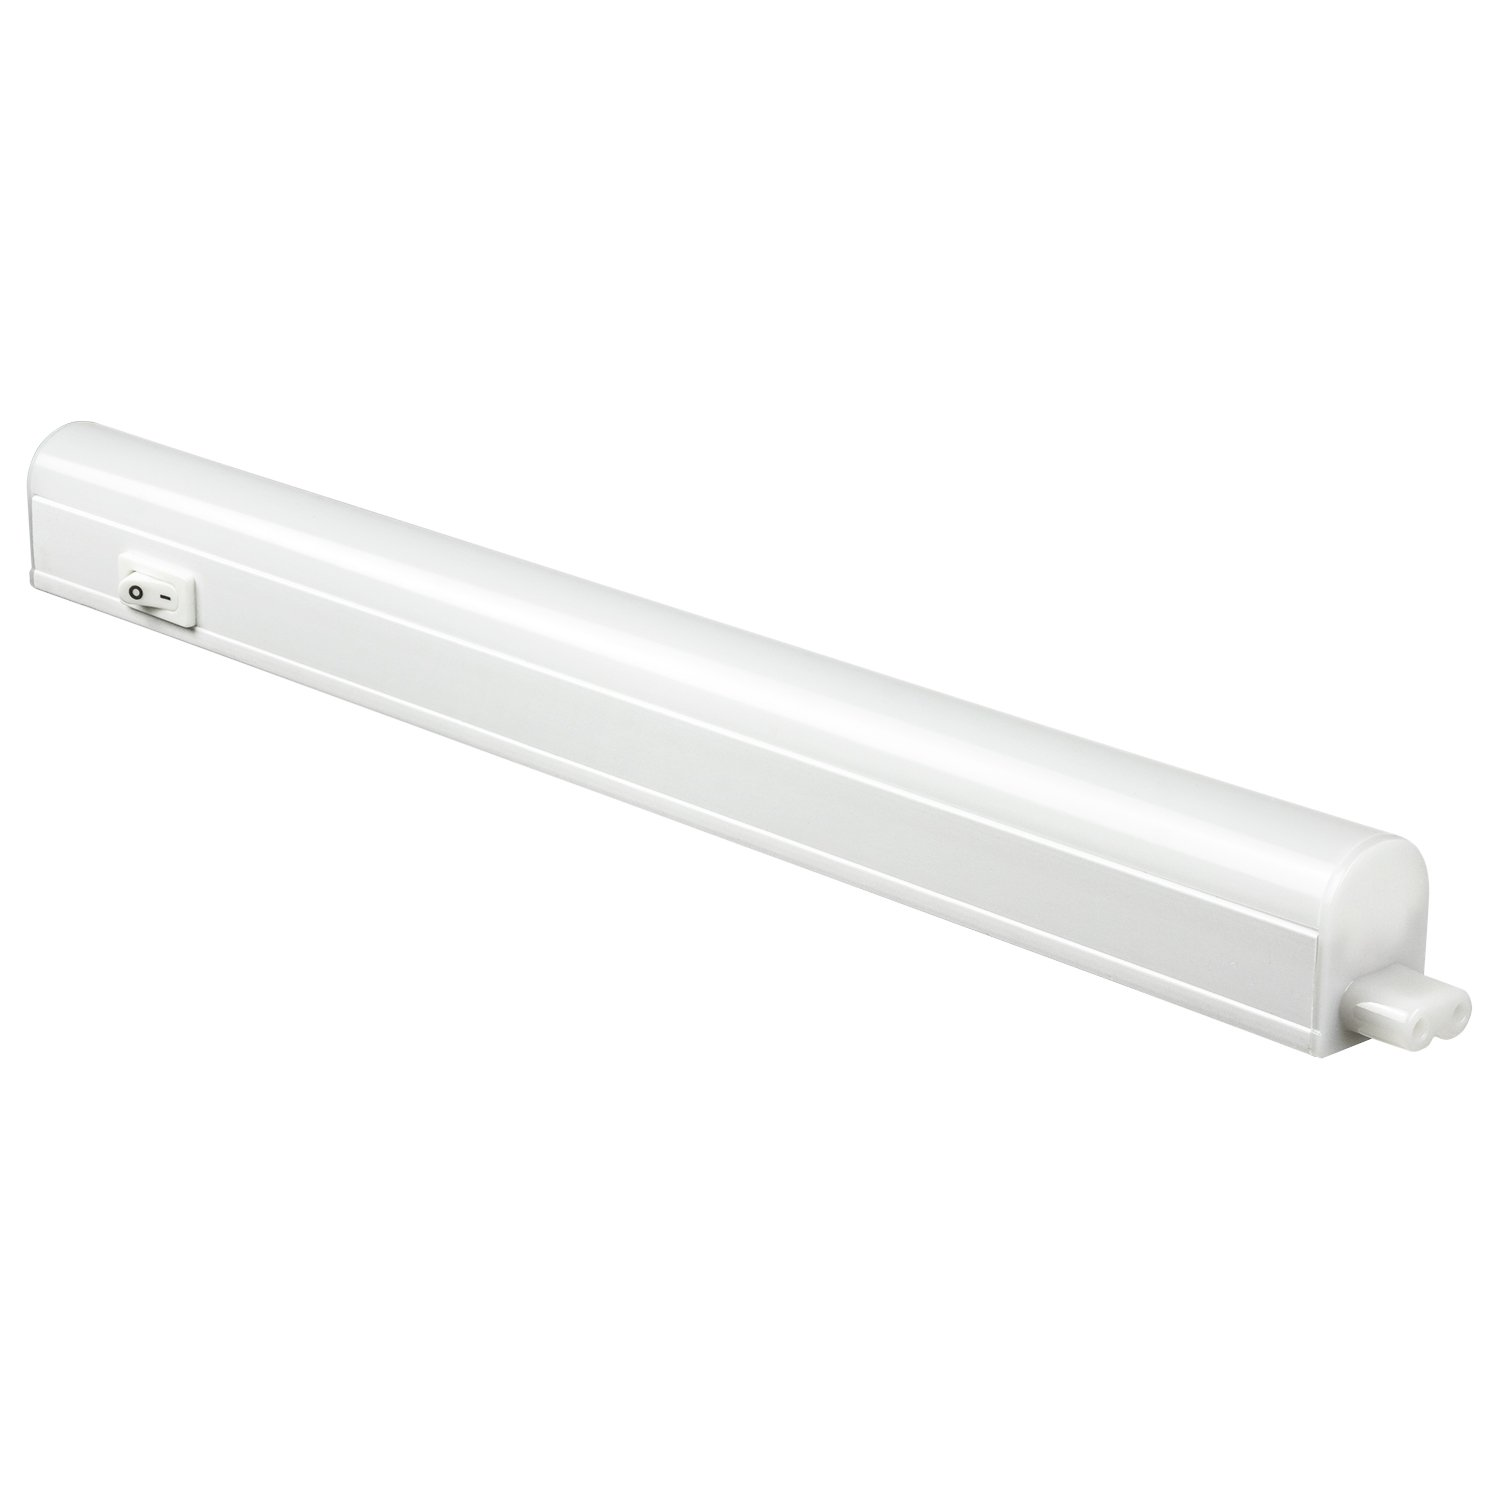 Sunlite LFX UC 12 4W 40K 4-watt 120-volt LED Linkable Under Cabinet Fixture with Plug, 12-Inch, White Finish